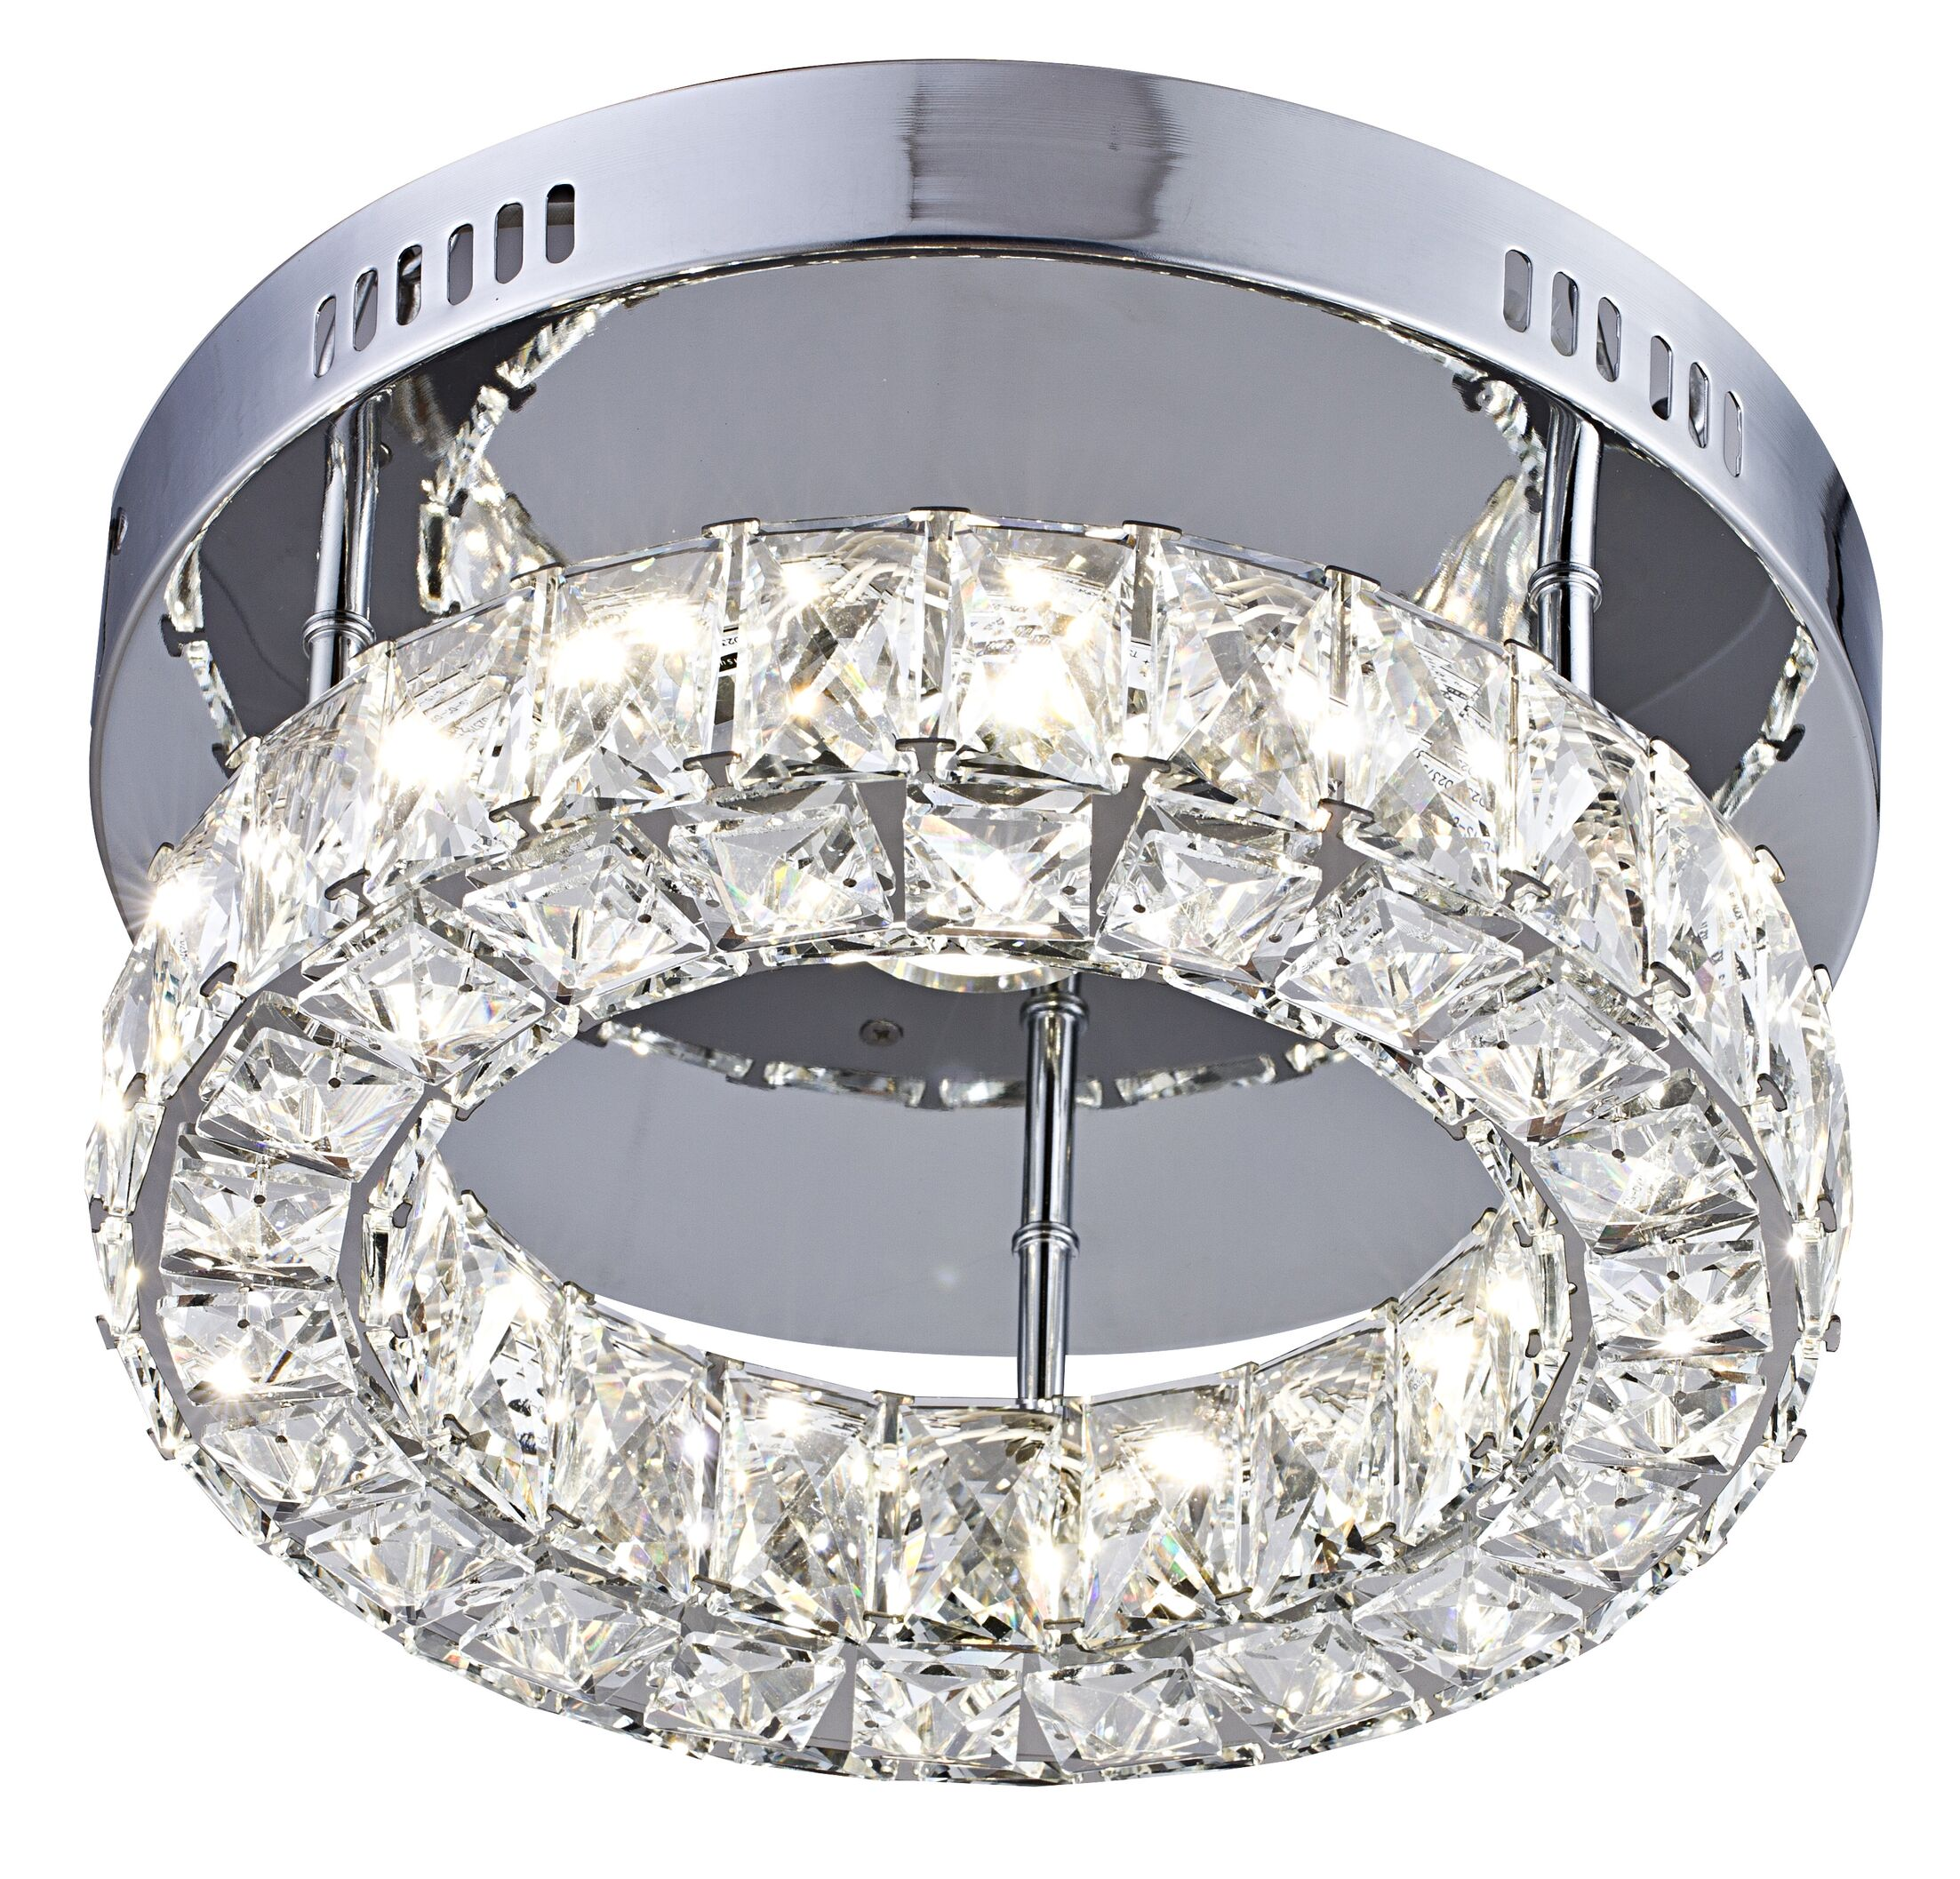 Venita 1-Light LED Flush Mount